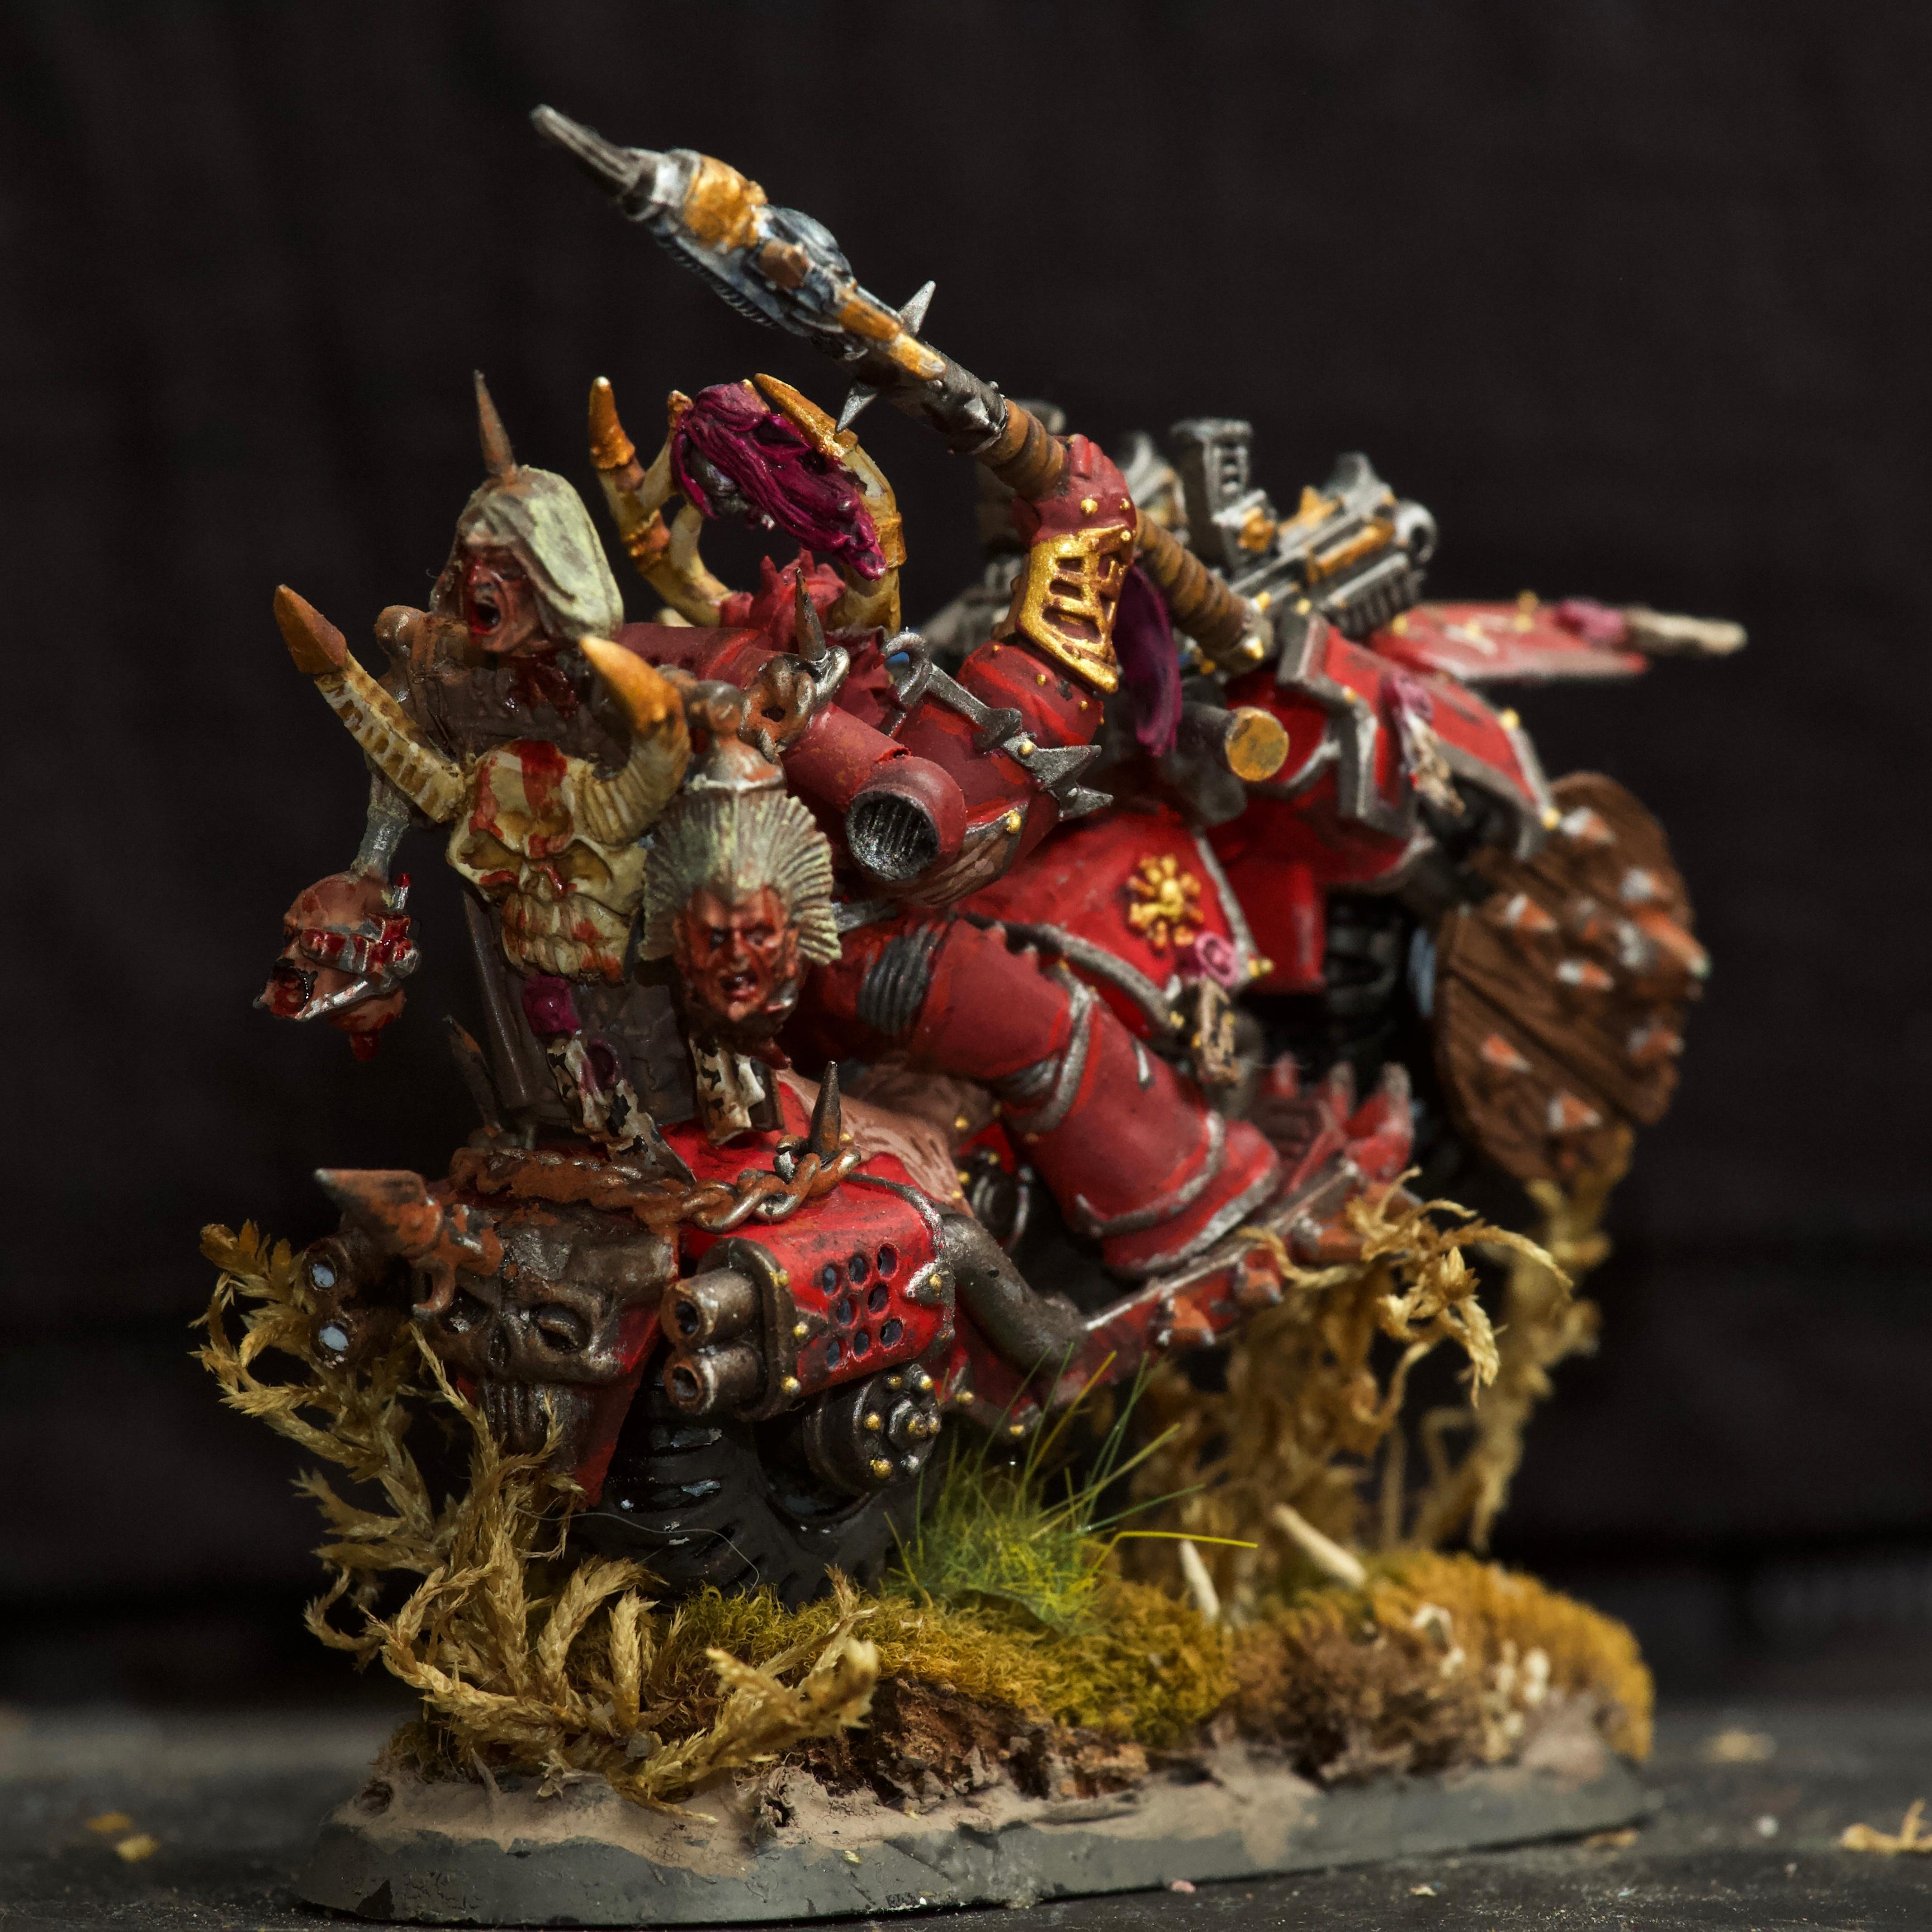 Accursed Crozius, Avatars Of War, Awesome Photos, Banner, Bike, By Andrey Mishuta, Chaos, Chaos Space Marines, Conversion, Dark Apostle, Fast Attack, Heretic Astartes, M.a.k., Trophy, Warhammer 40,000, Word Bearers